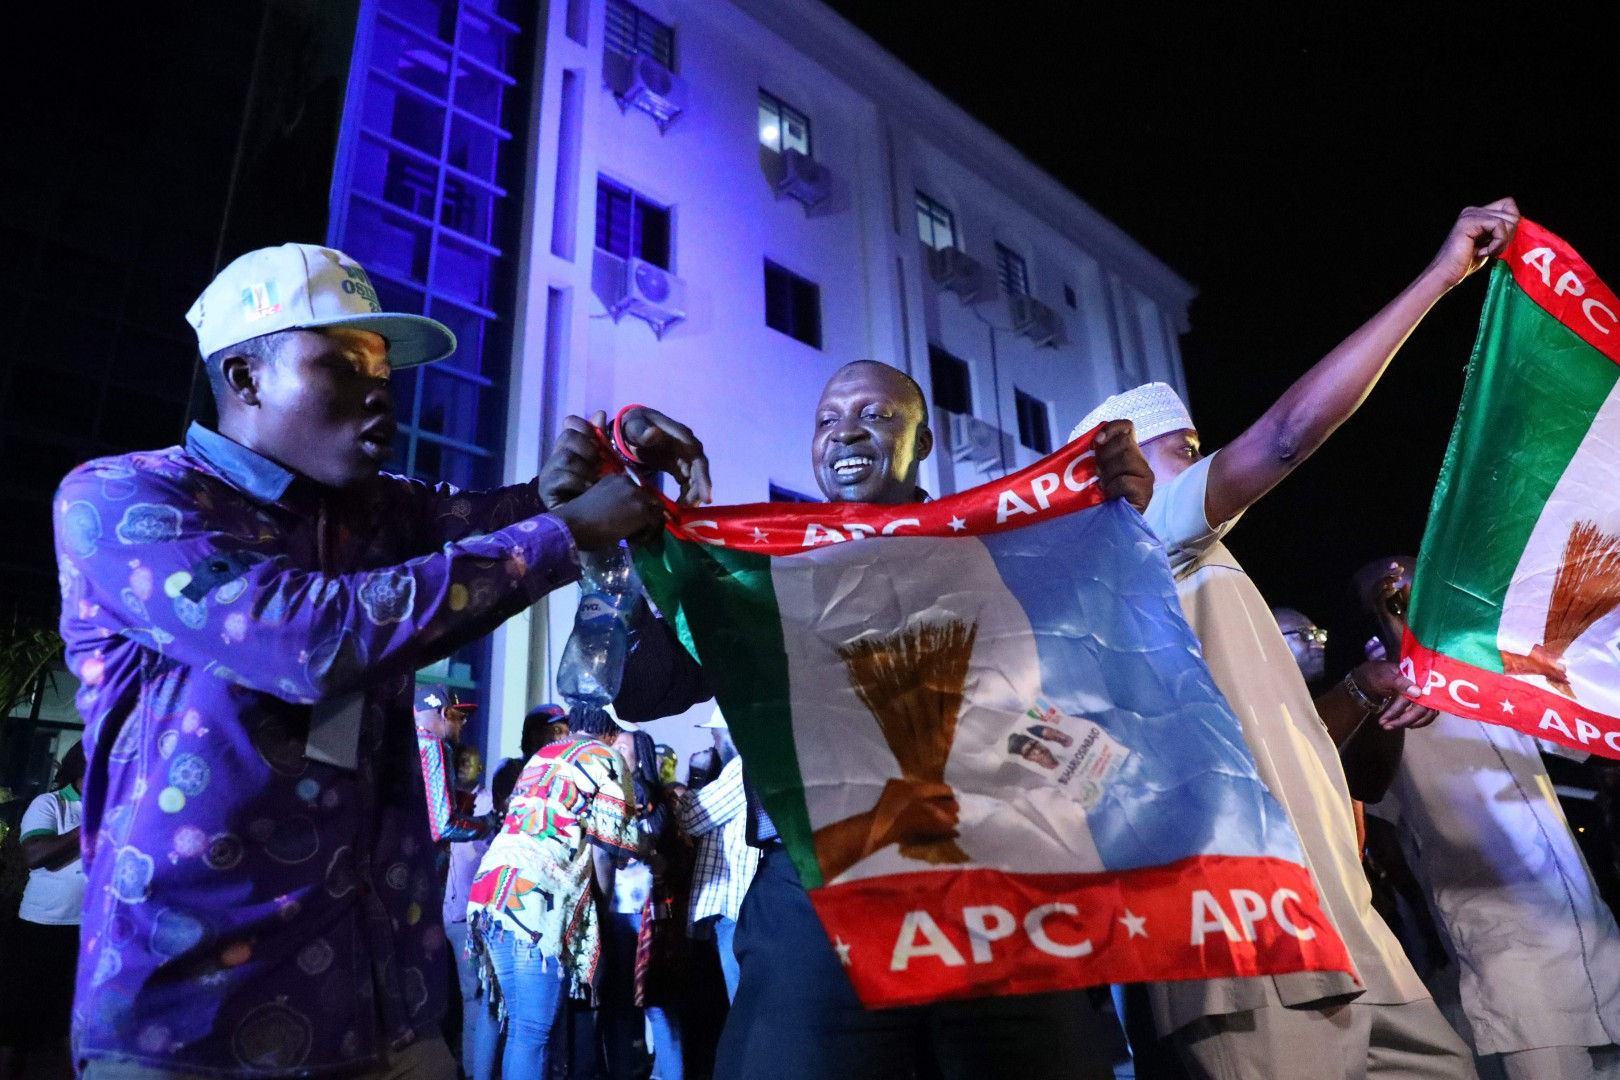 TOPSHOT - Supporters of the ruling All Progressives Congress (APC) celebrate with party flags in Abuja, Nigeria, after candidate President Mohammadu Buhari was re-elected on February 26, 2019. - Muhammadu Buhari was re-elected Nigeria's president, results showed February 26, 2019, after a delayed poll that angered voters and led to claims of rigging and collusion. Buhari, 76, took an unassailable lead of more than four million votes as the last states were yet to be declared, making it impossible for his nearest rival, Atiku Abubakar, to win. The win was confirmed as Abubakar won in the very last state to declare -- Rivers in the south -- but could not claw back the deficit. (Photo by KOLA SULAIMON / AFP)